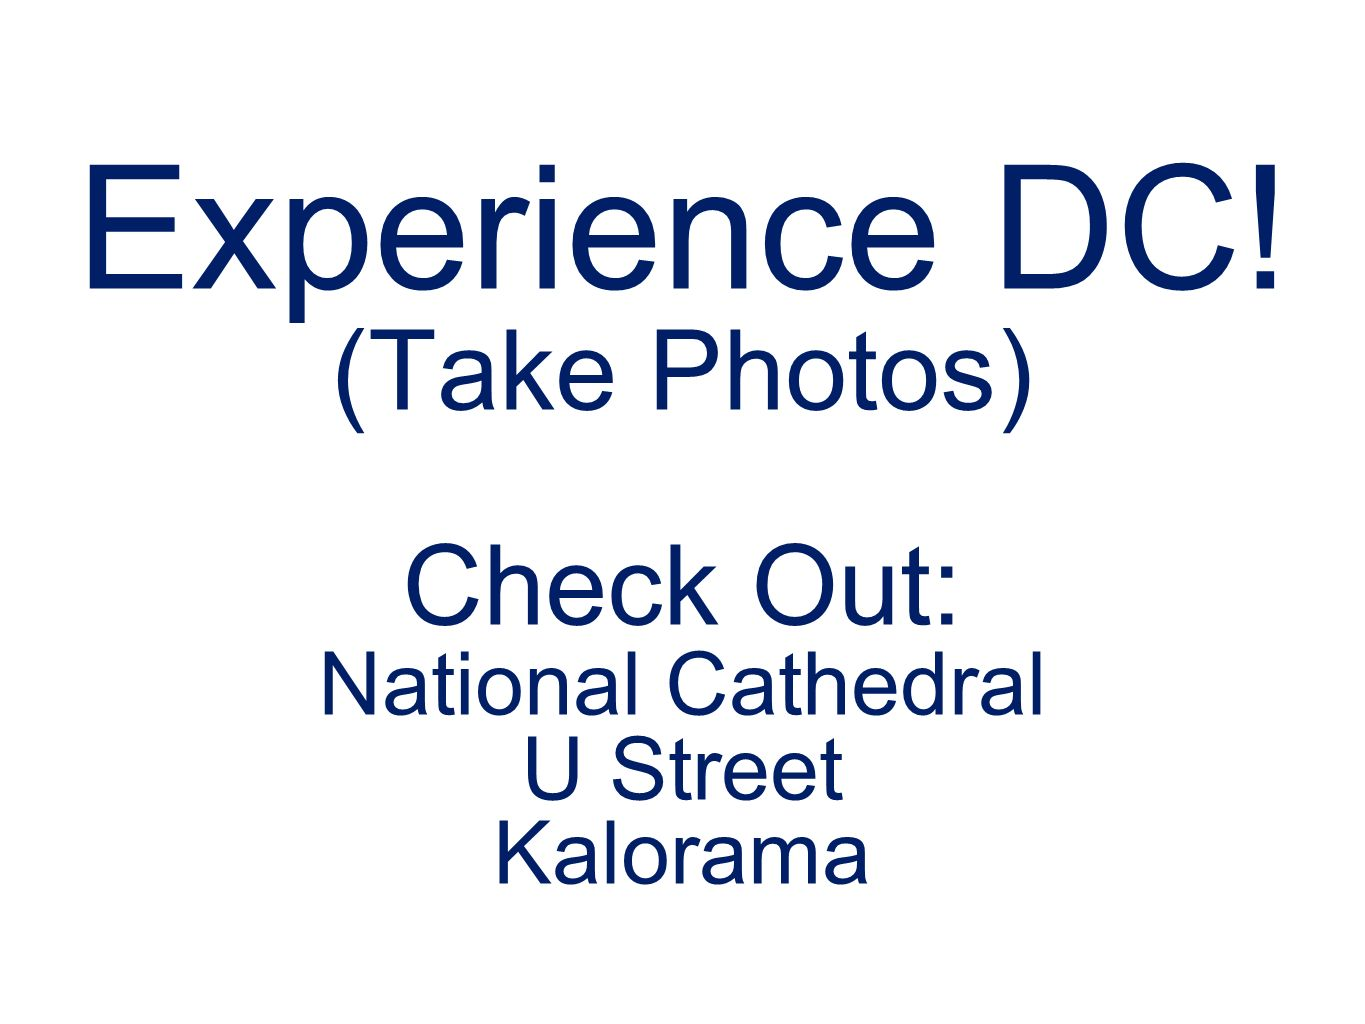 Experience DC! (Take Photos) Check Out: National Cathedral U Street Kalorama